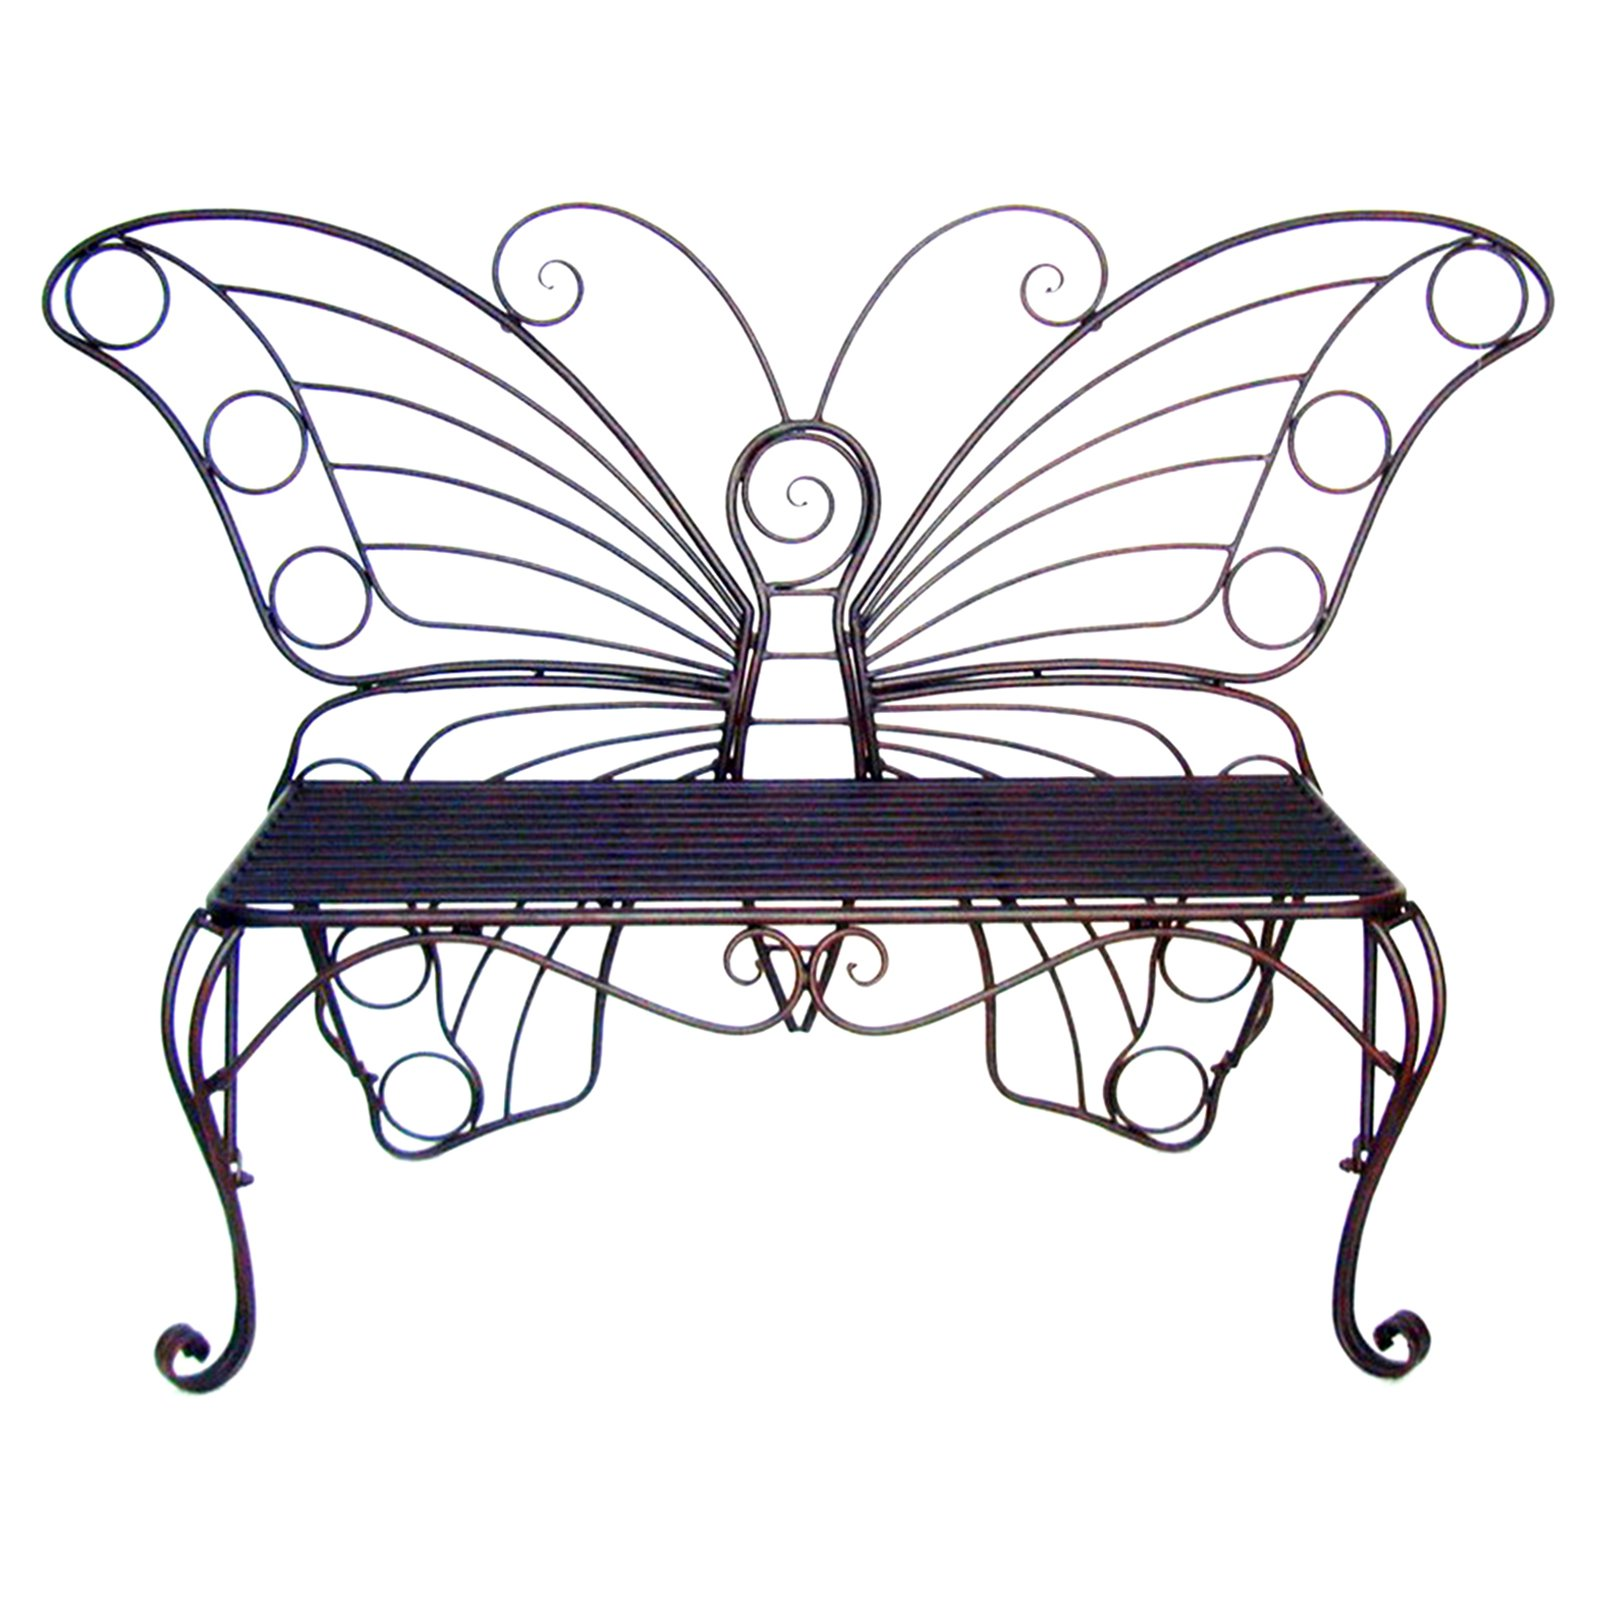 ANTIQUE BLACK METAL BUTTERFLY BENCH